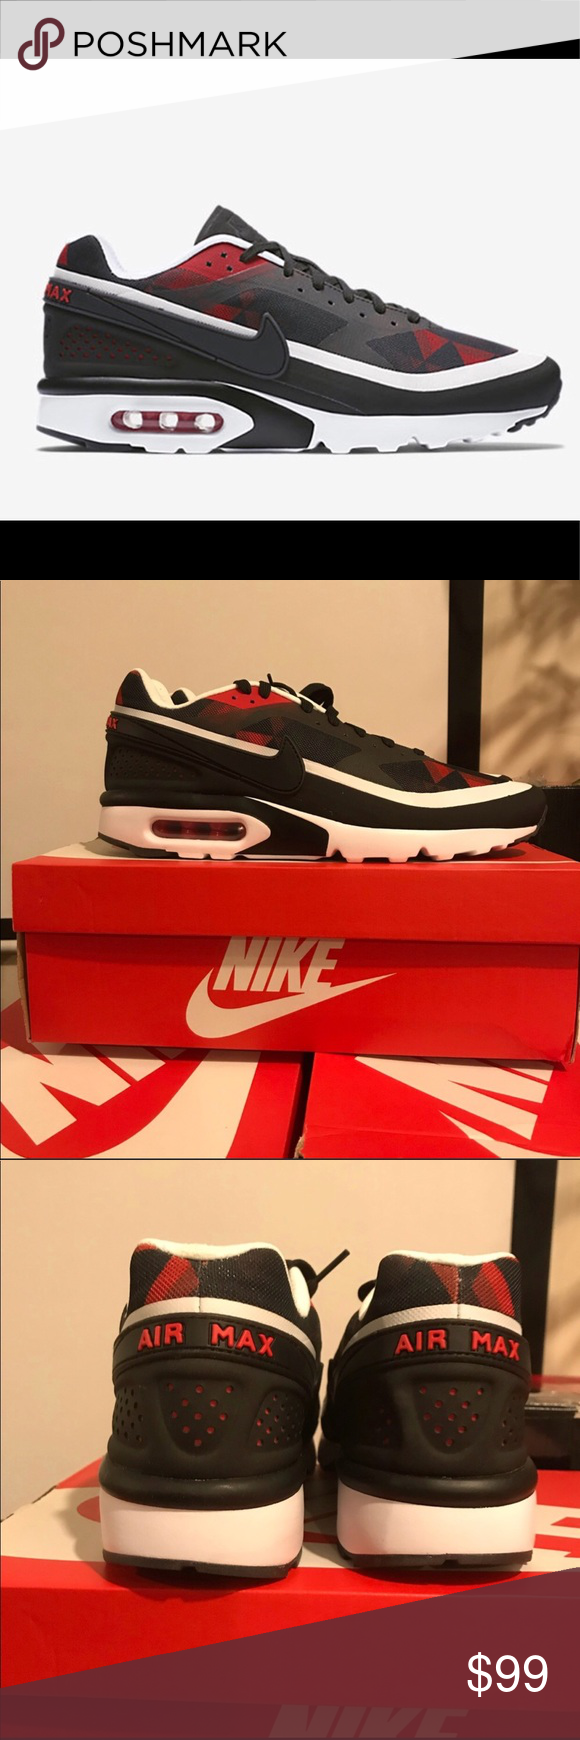 size 40 4c963 4140d Nike Air Max BW ULTRA GPX Brand new unused mint Nike air max bw ultra gpx  brand new ready to ship, Nike Shoes Sneakers